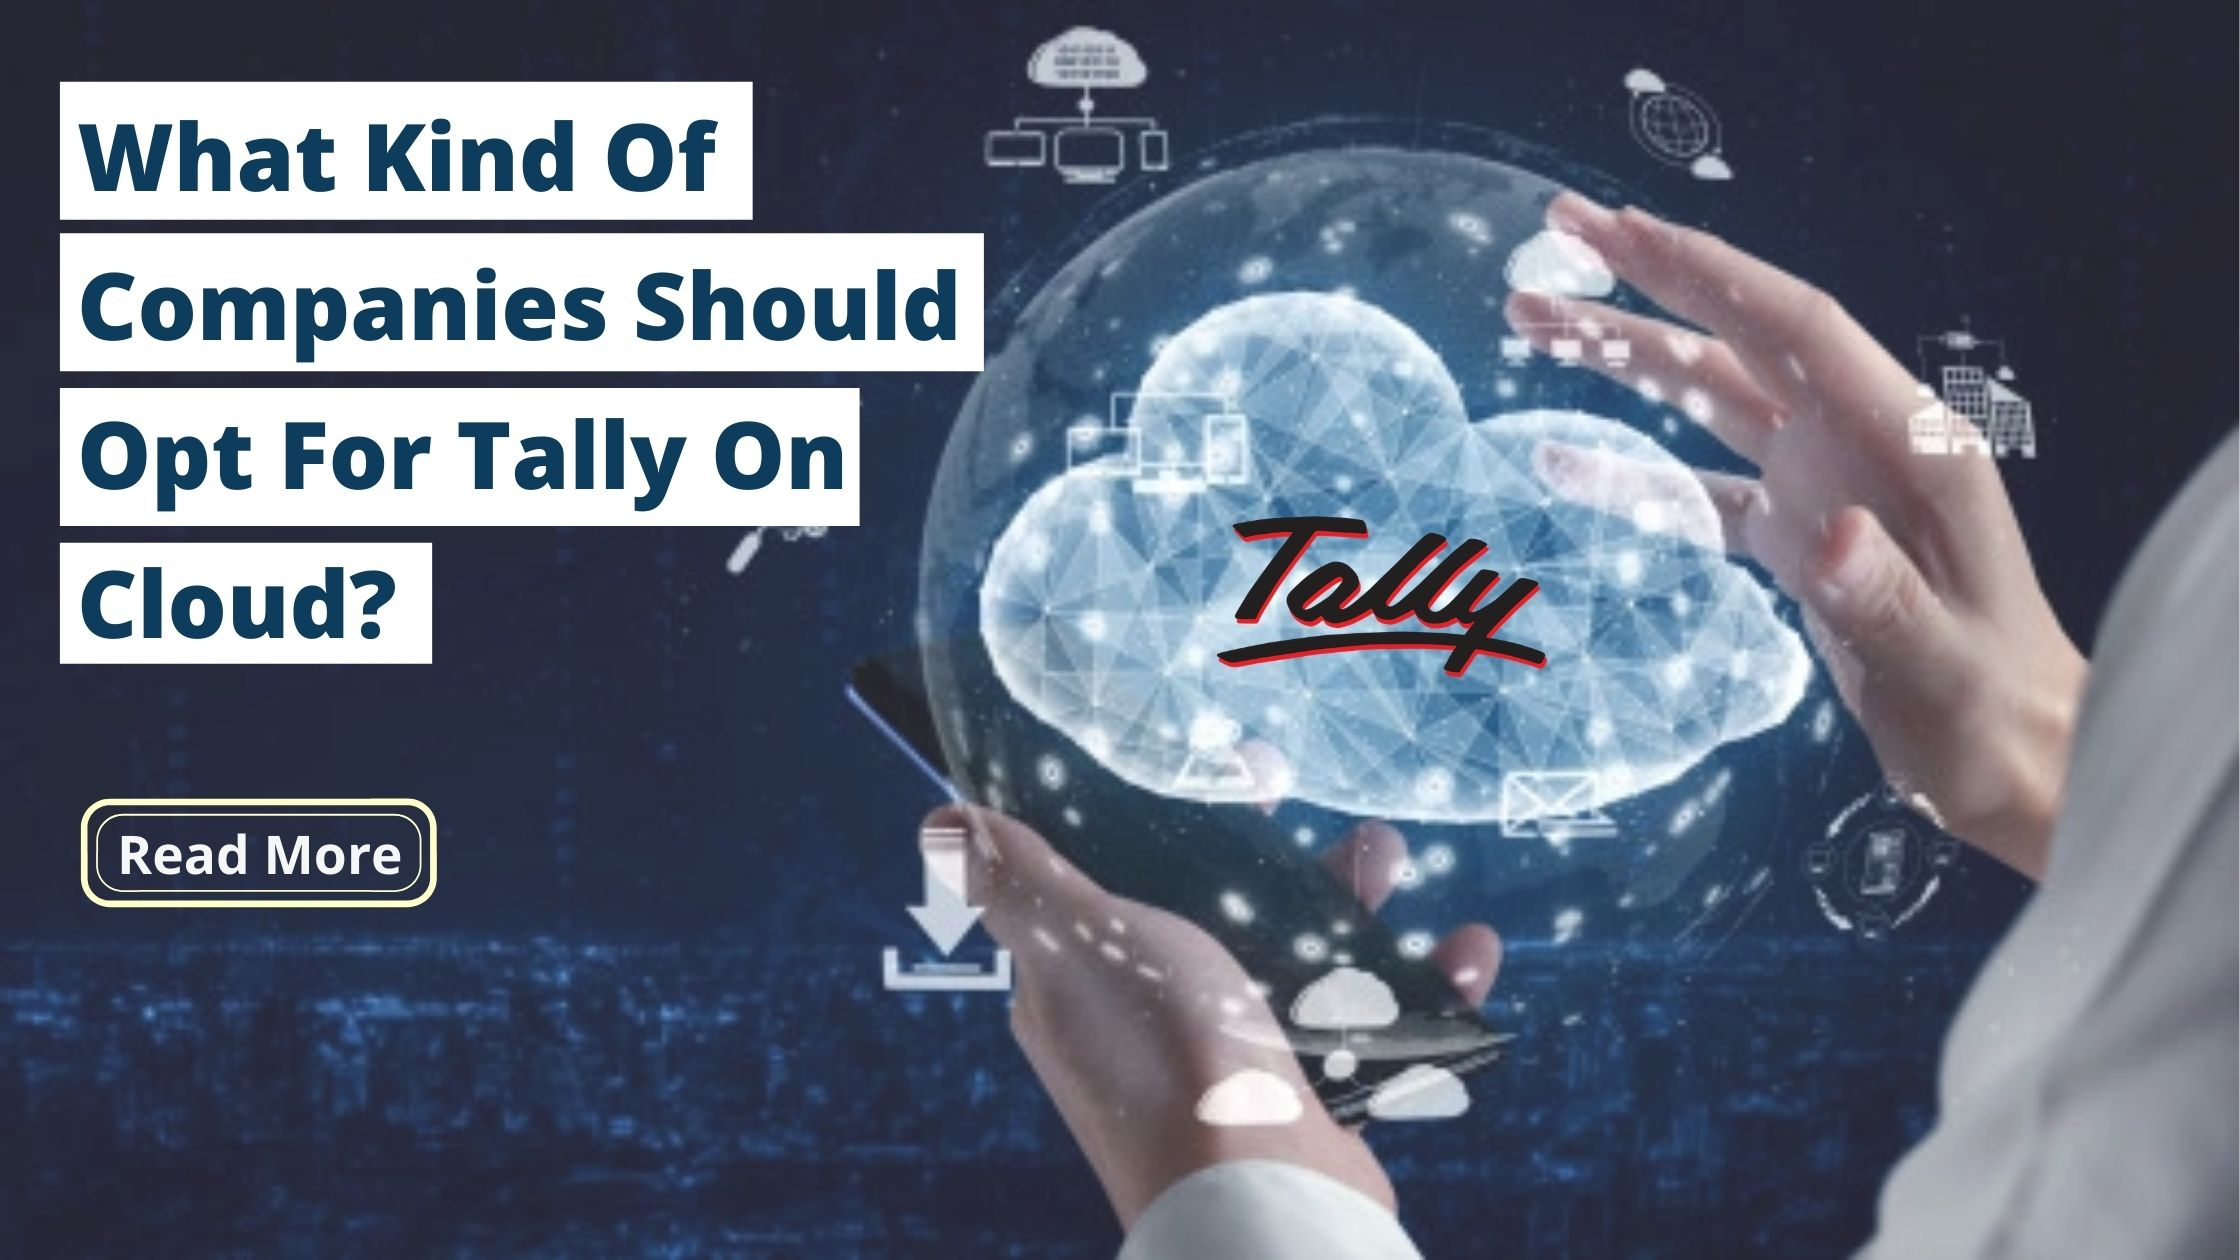 Opt For Tally On Cloud